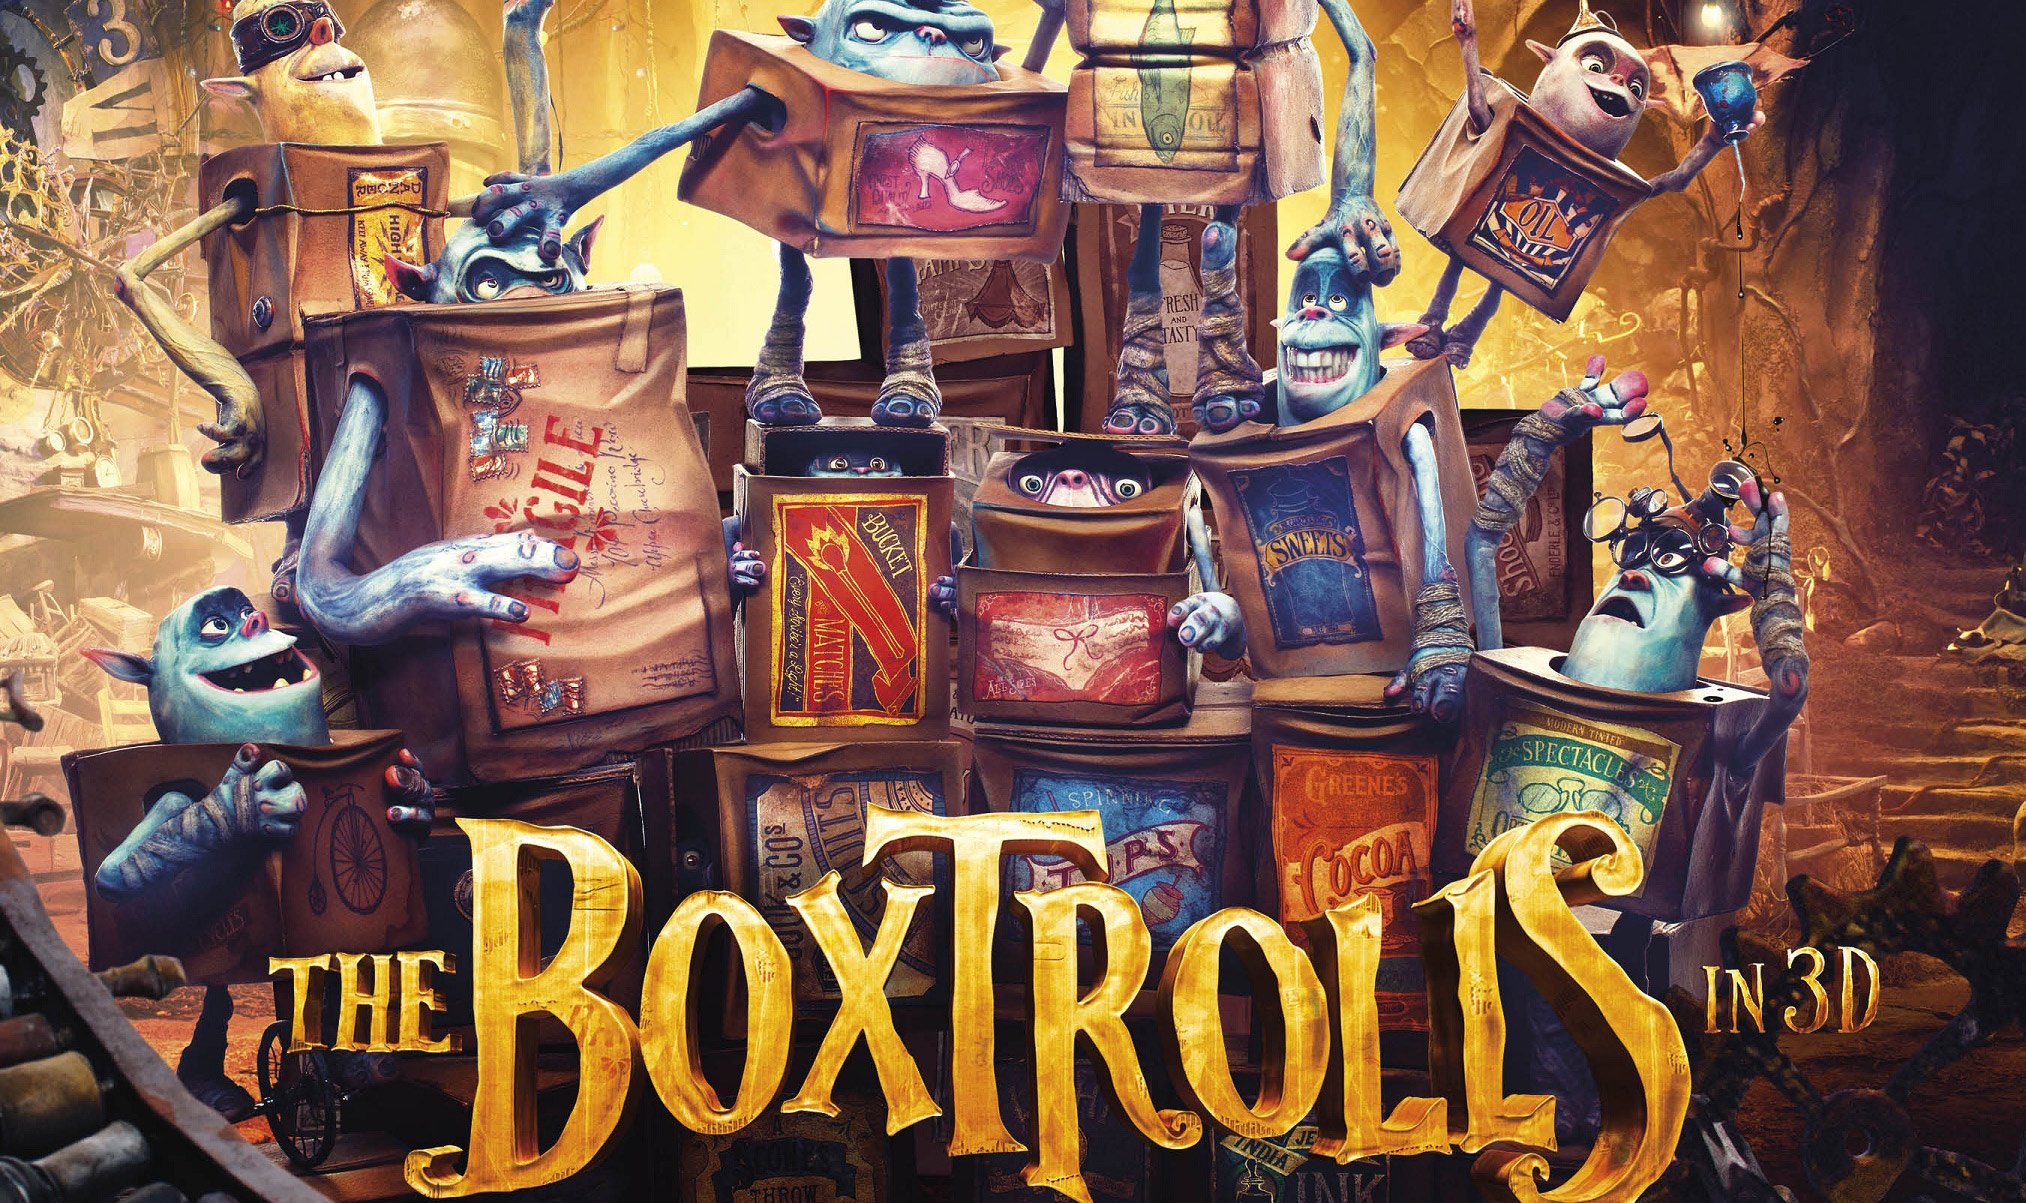 The Boxtrolls Poster Wallpapers Wallpapers Quality 2026x1203